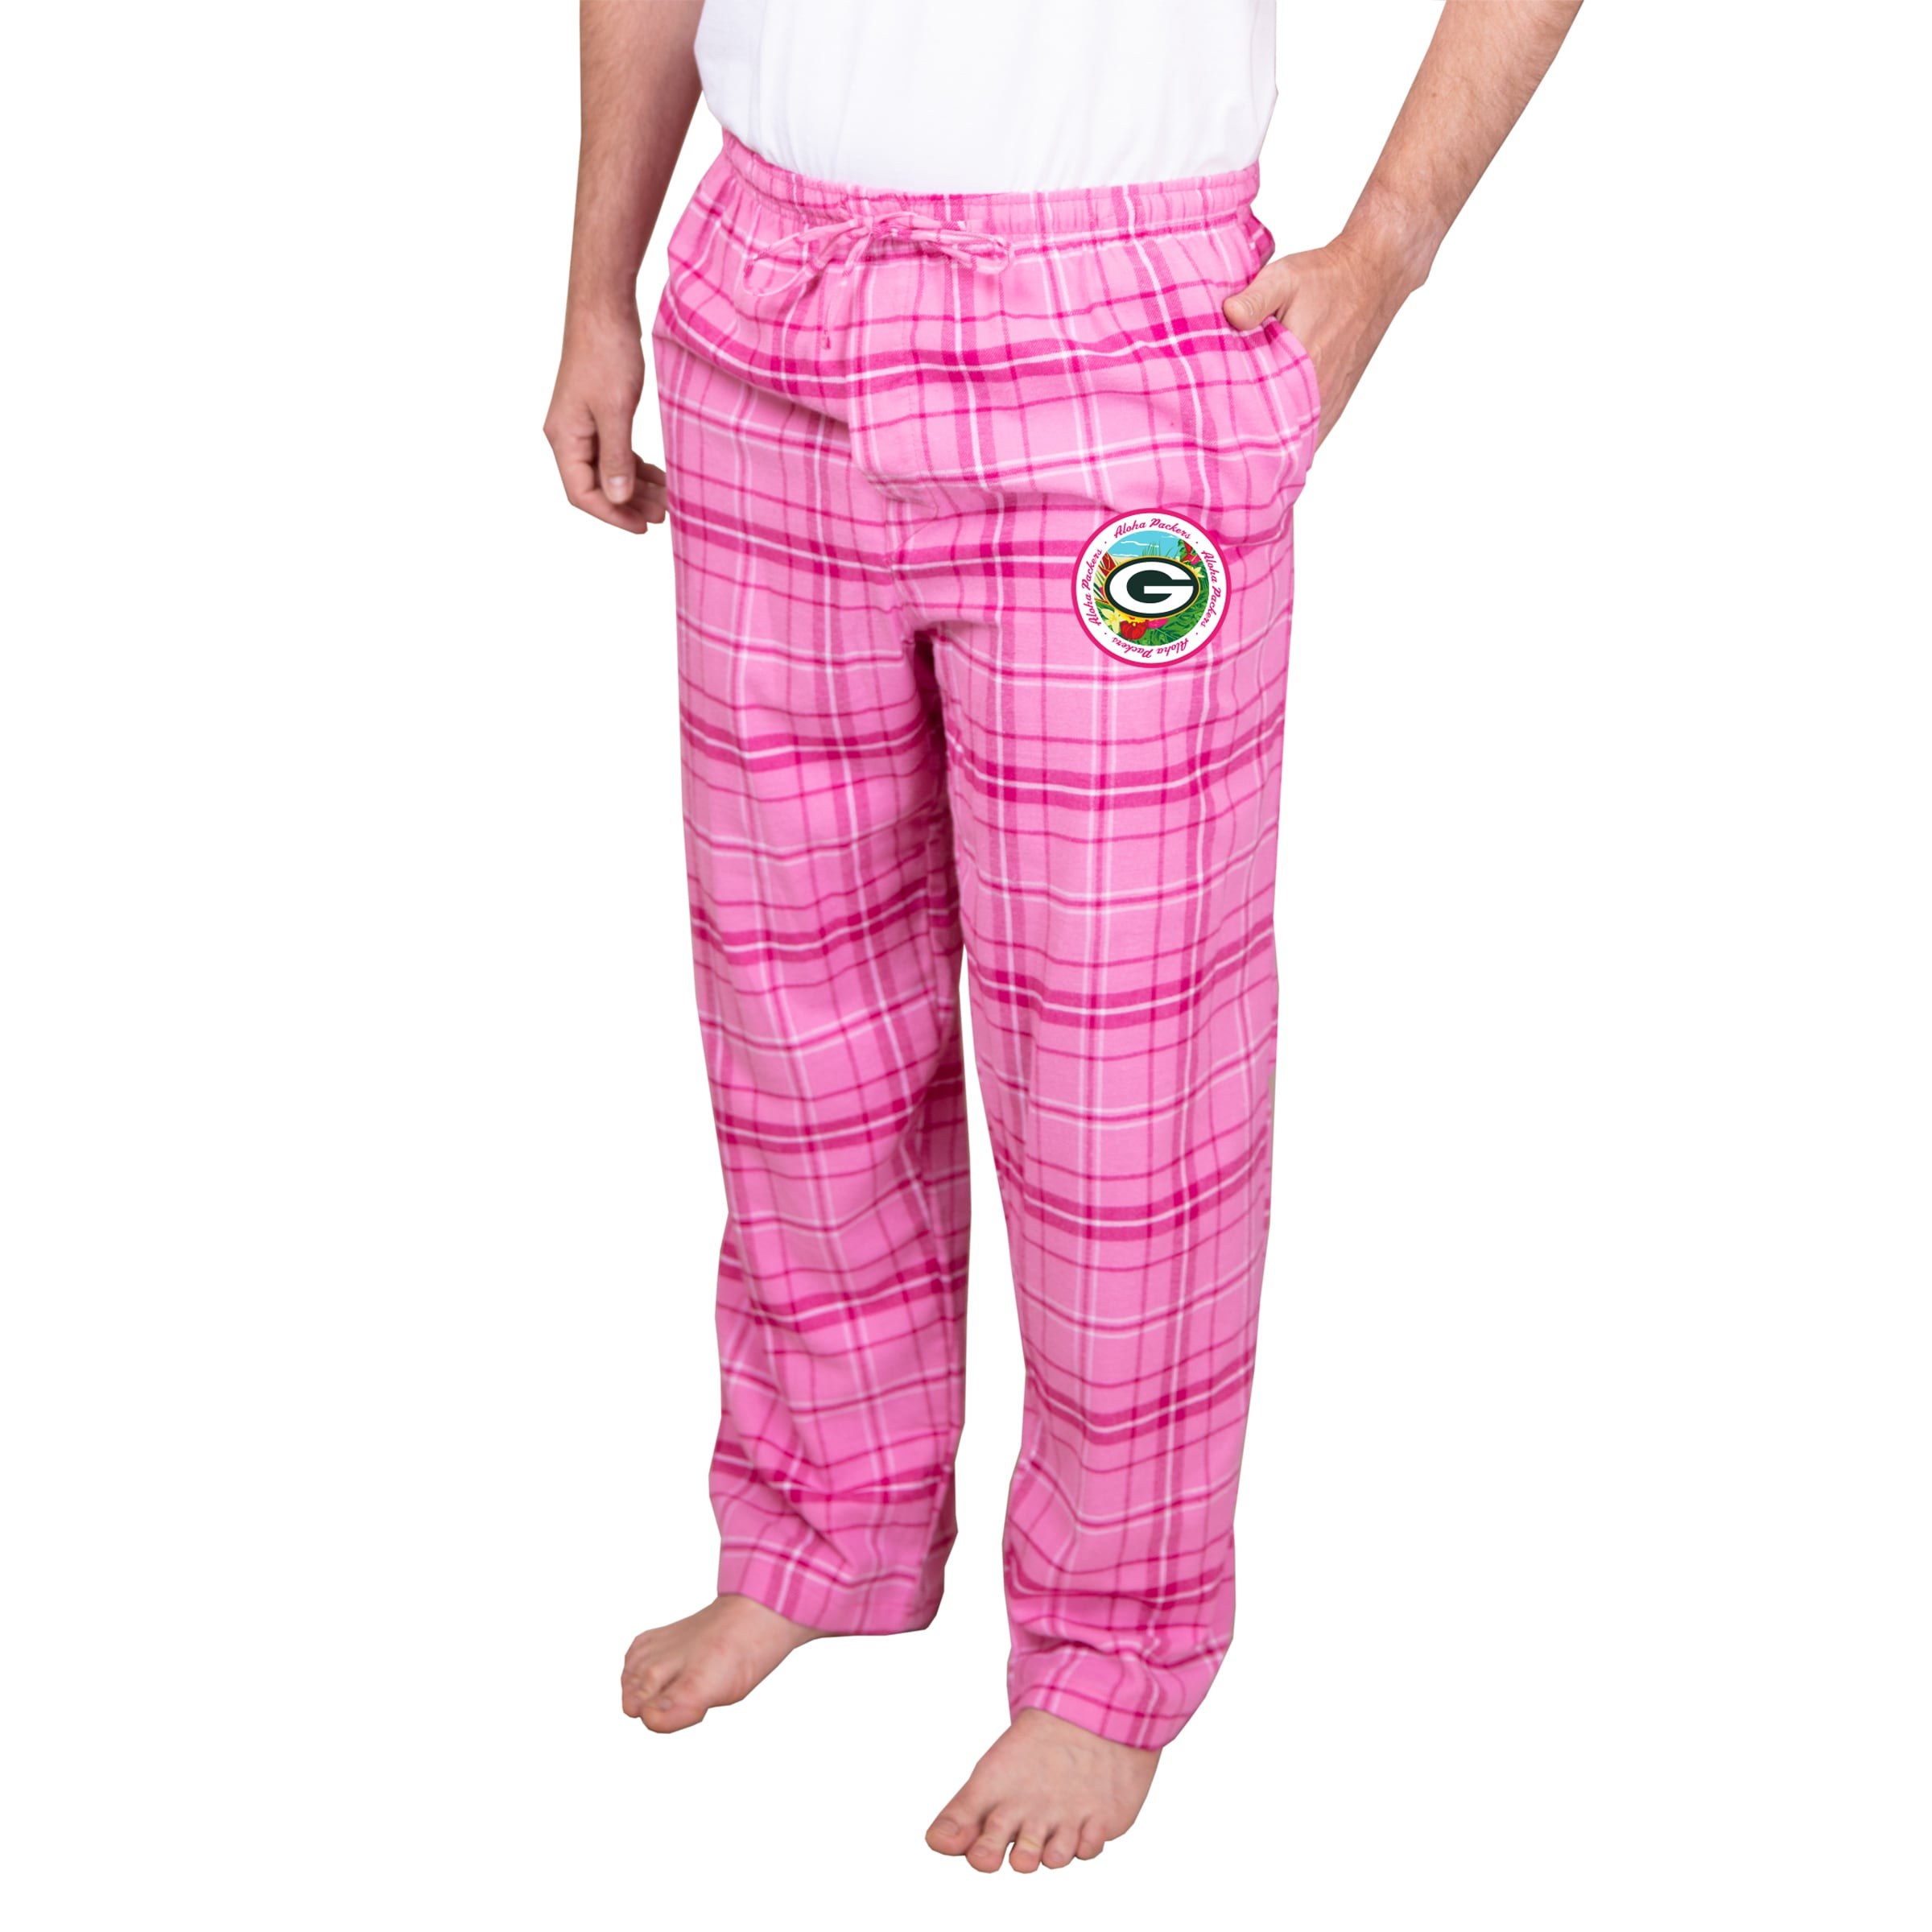 Green Bay Packers Concepts Sport Ultimate Pants - Pink